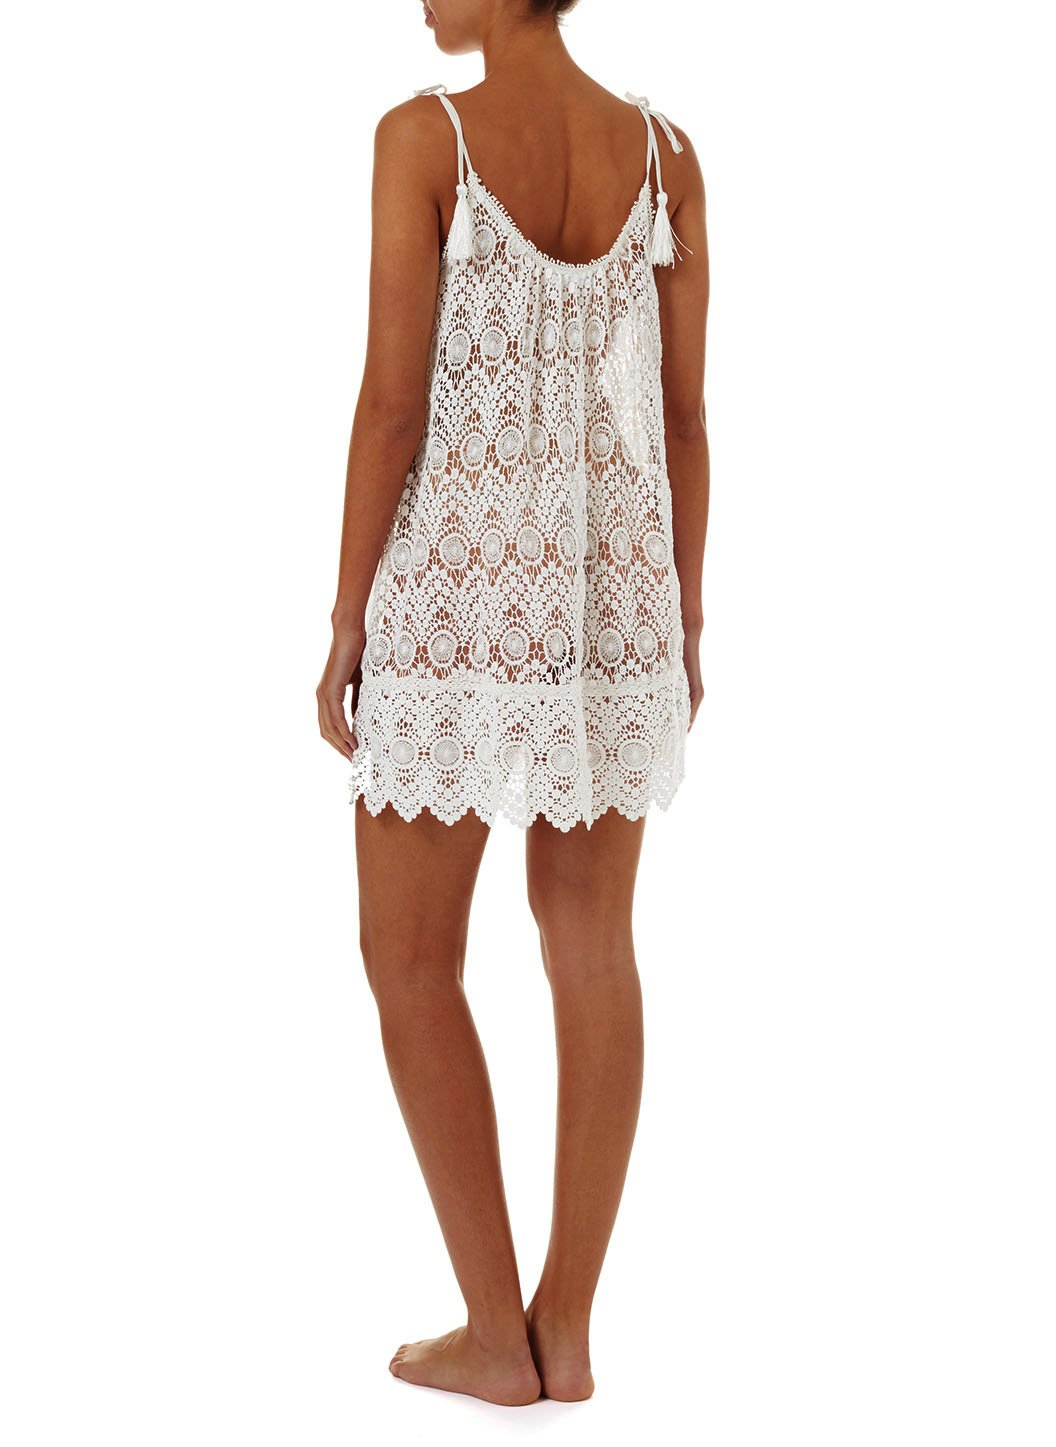 ana cream lace short tieshoulder beach dress 2019 B